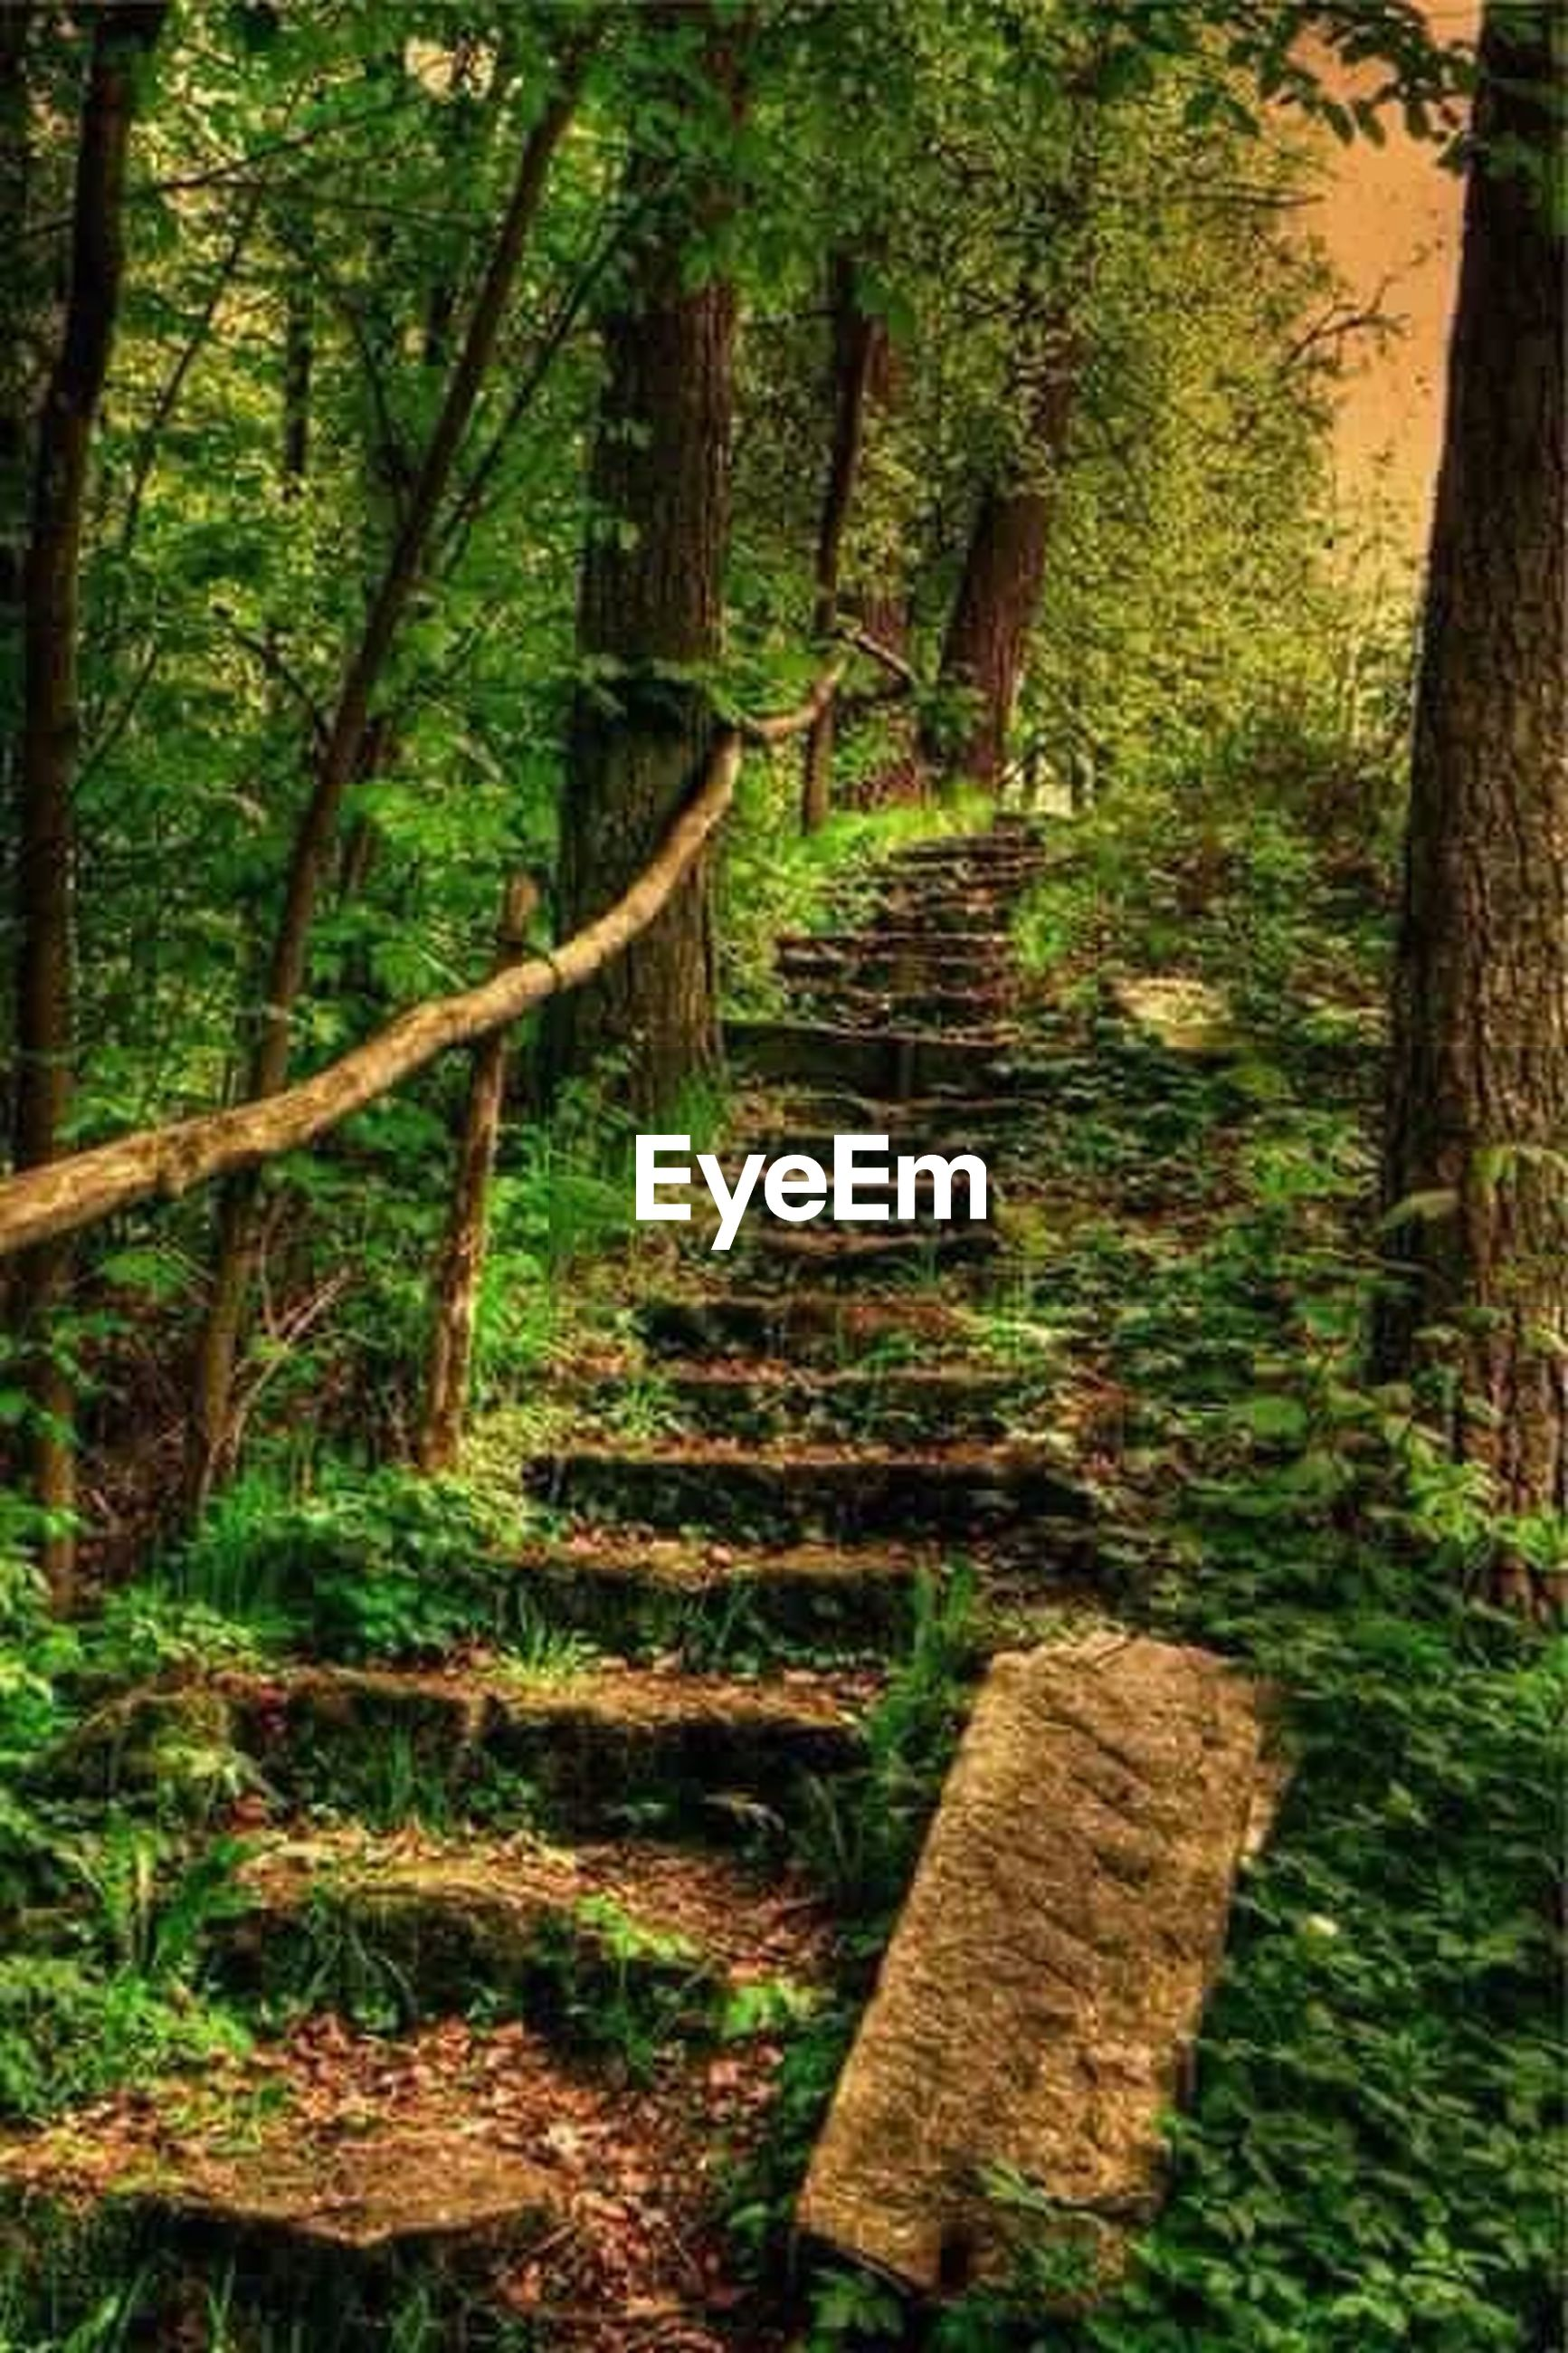 tree, forest, wood - material, growth, plant, tree trunk, built structure, tranquility, abandoned, steps, nature, green color, the way forward, old, wood, outdoors, day, wooden, architecture, no people